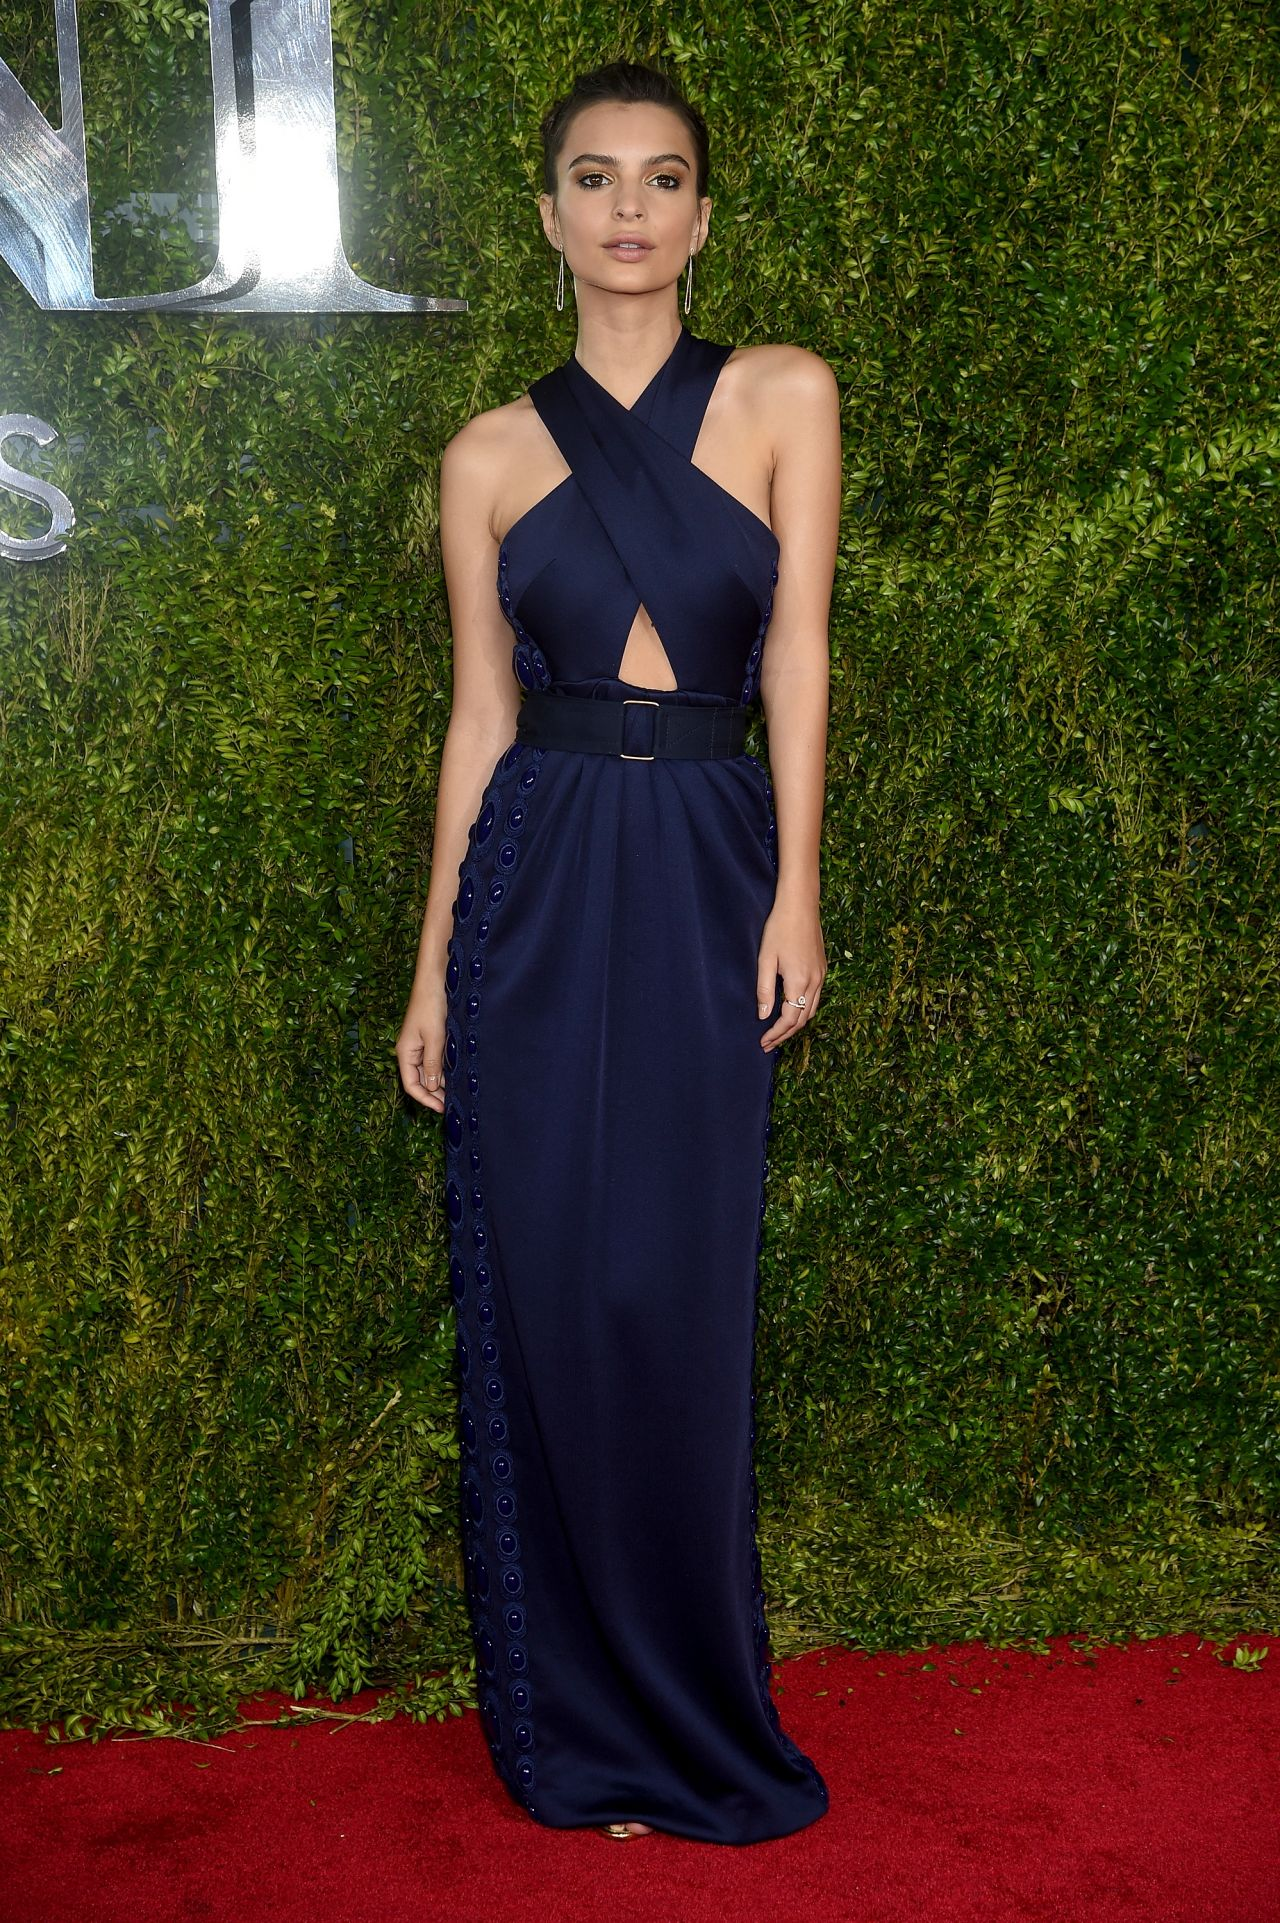 emily-ratajkowski-2015-tony-awards-in-new-york-city_4